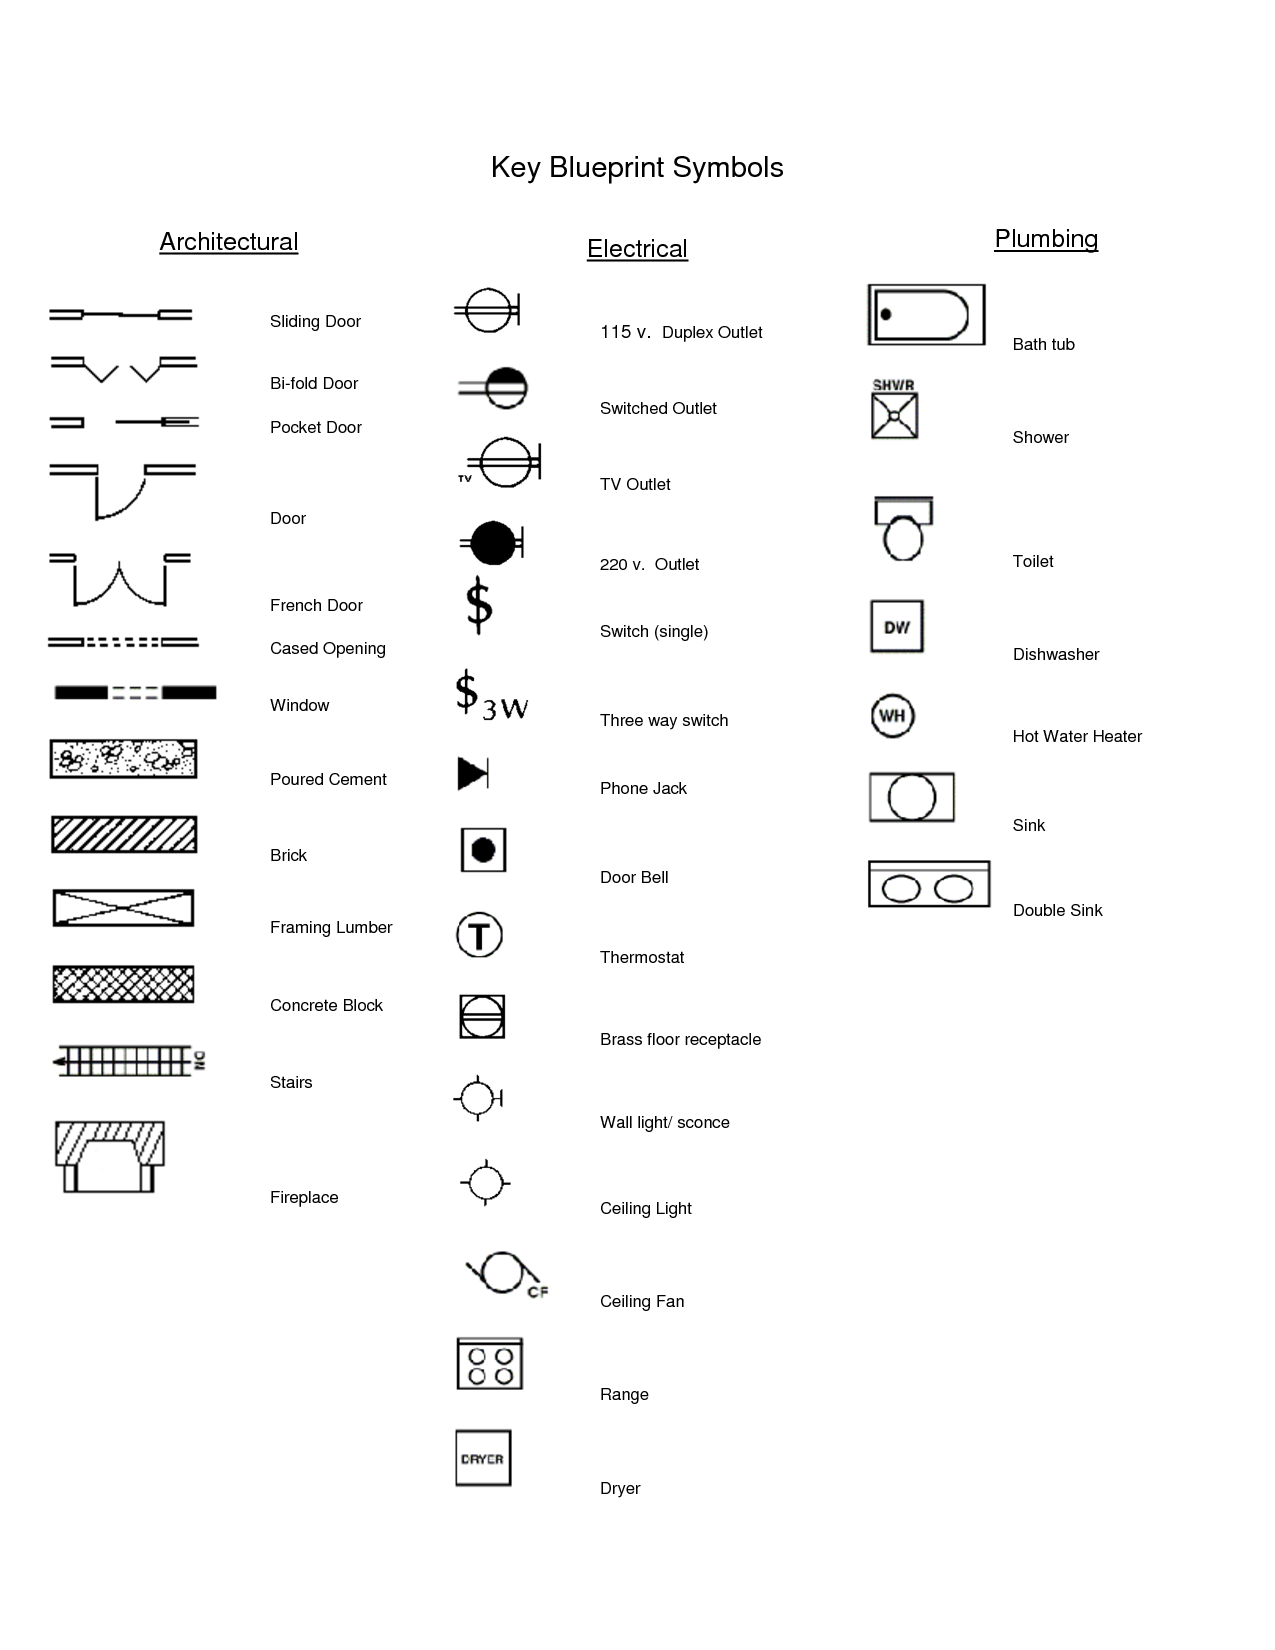 Electrical outlet symbols blueprints brick pinned by modlar electrical outlet symbols blueprints brick pinned by modlar malvernweather